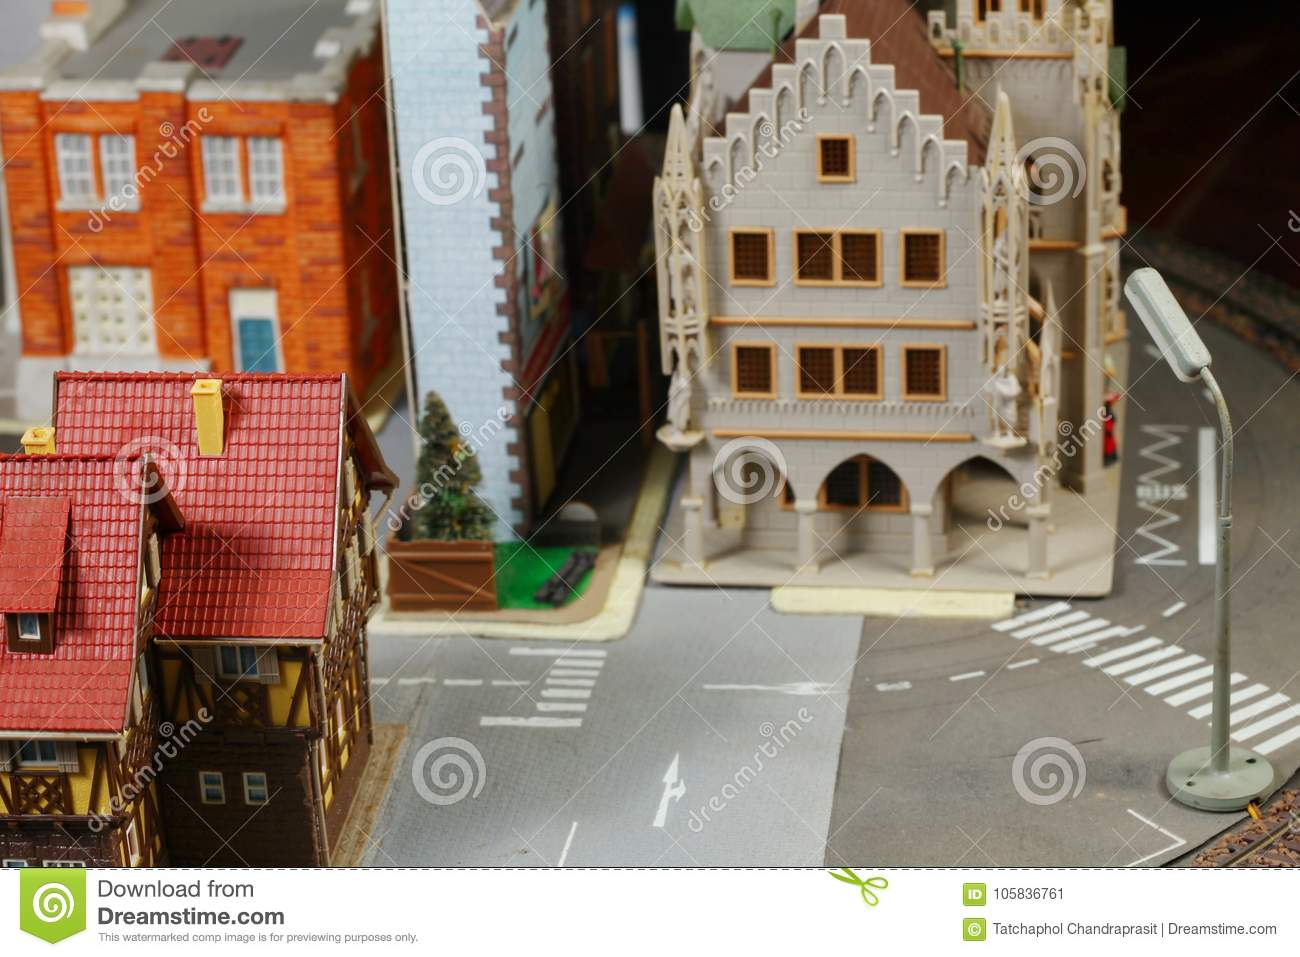 Model Railroad On The Miniature Model Scene  Stock Image